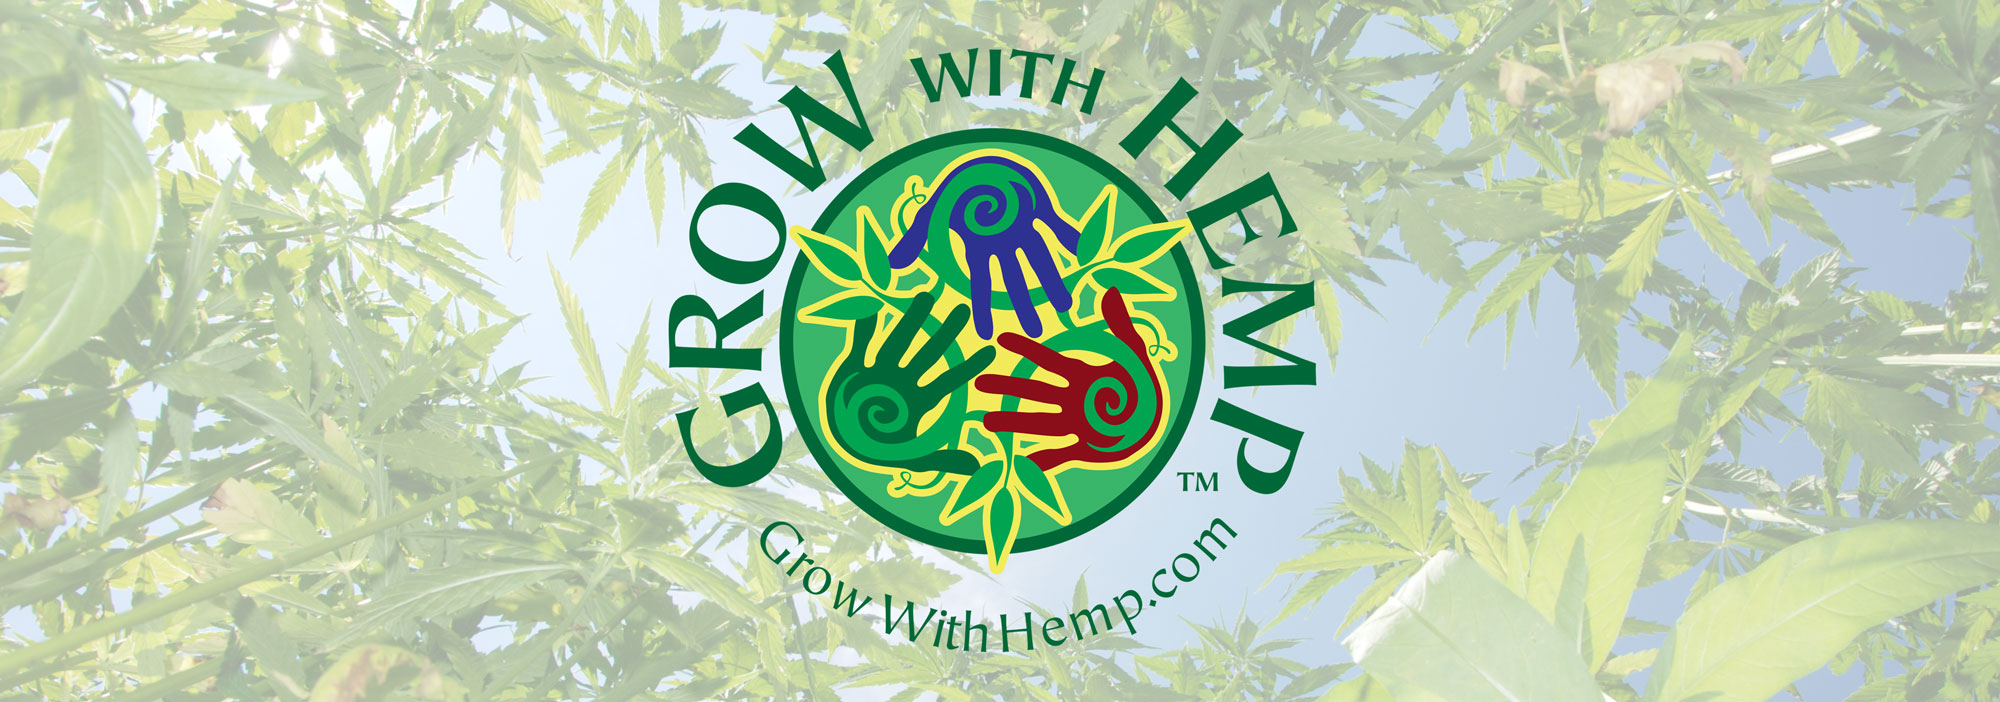 about grow with hemp